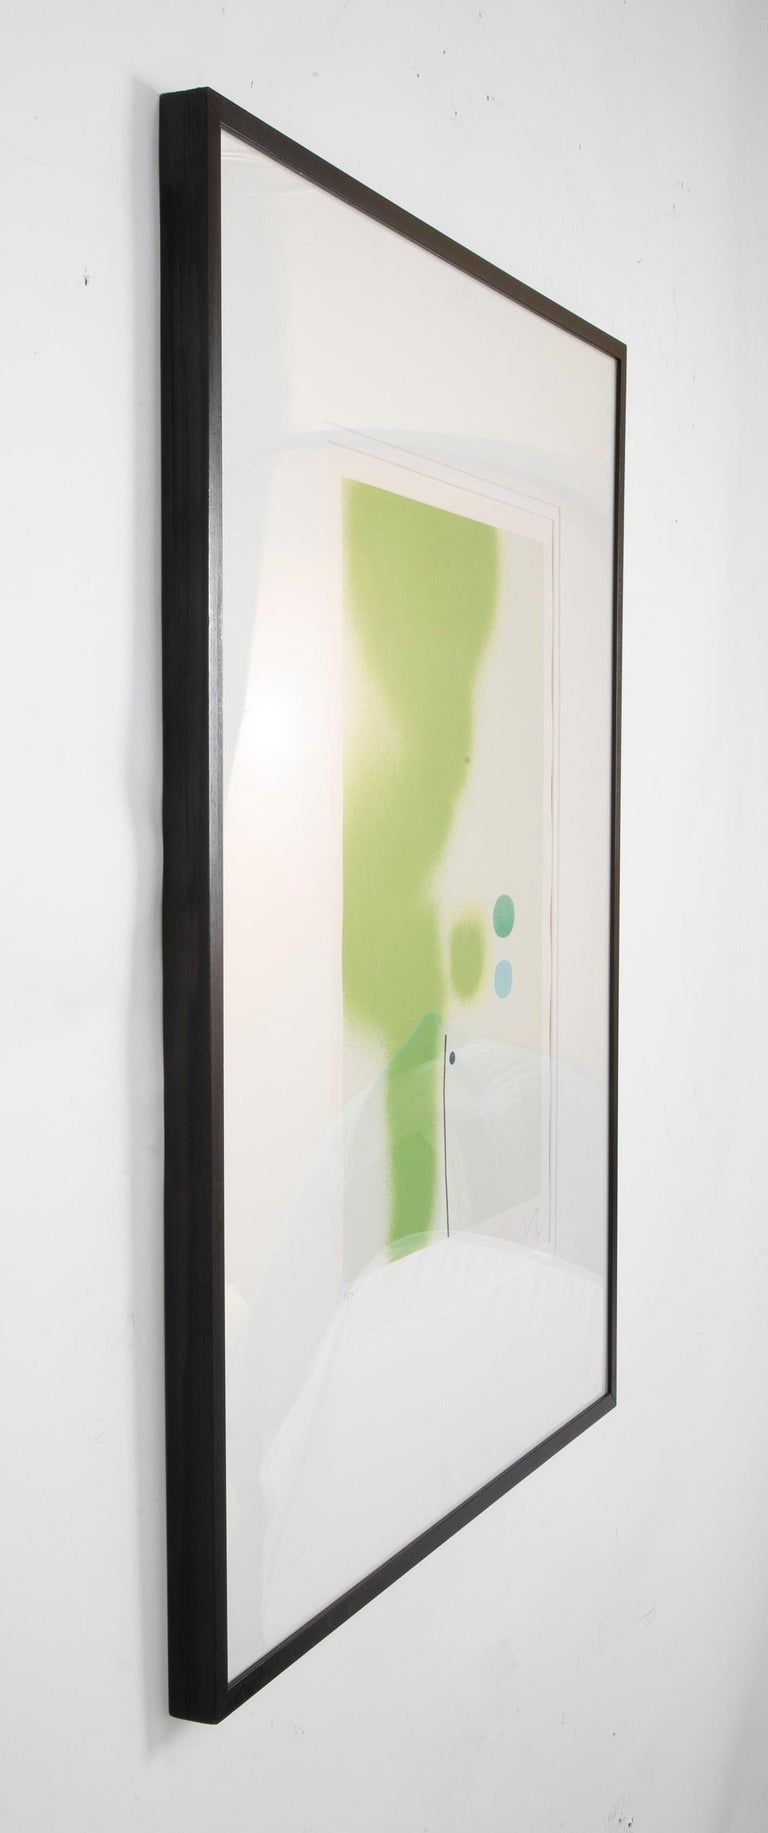 English Victor Pasmore Screenprint